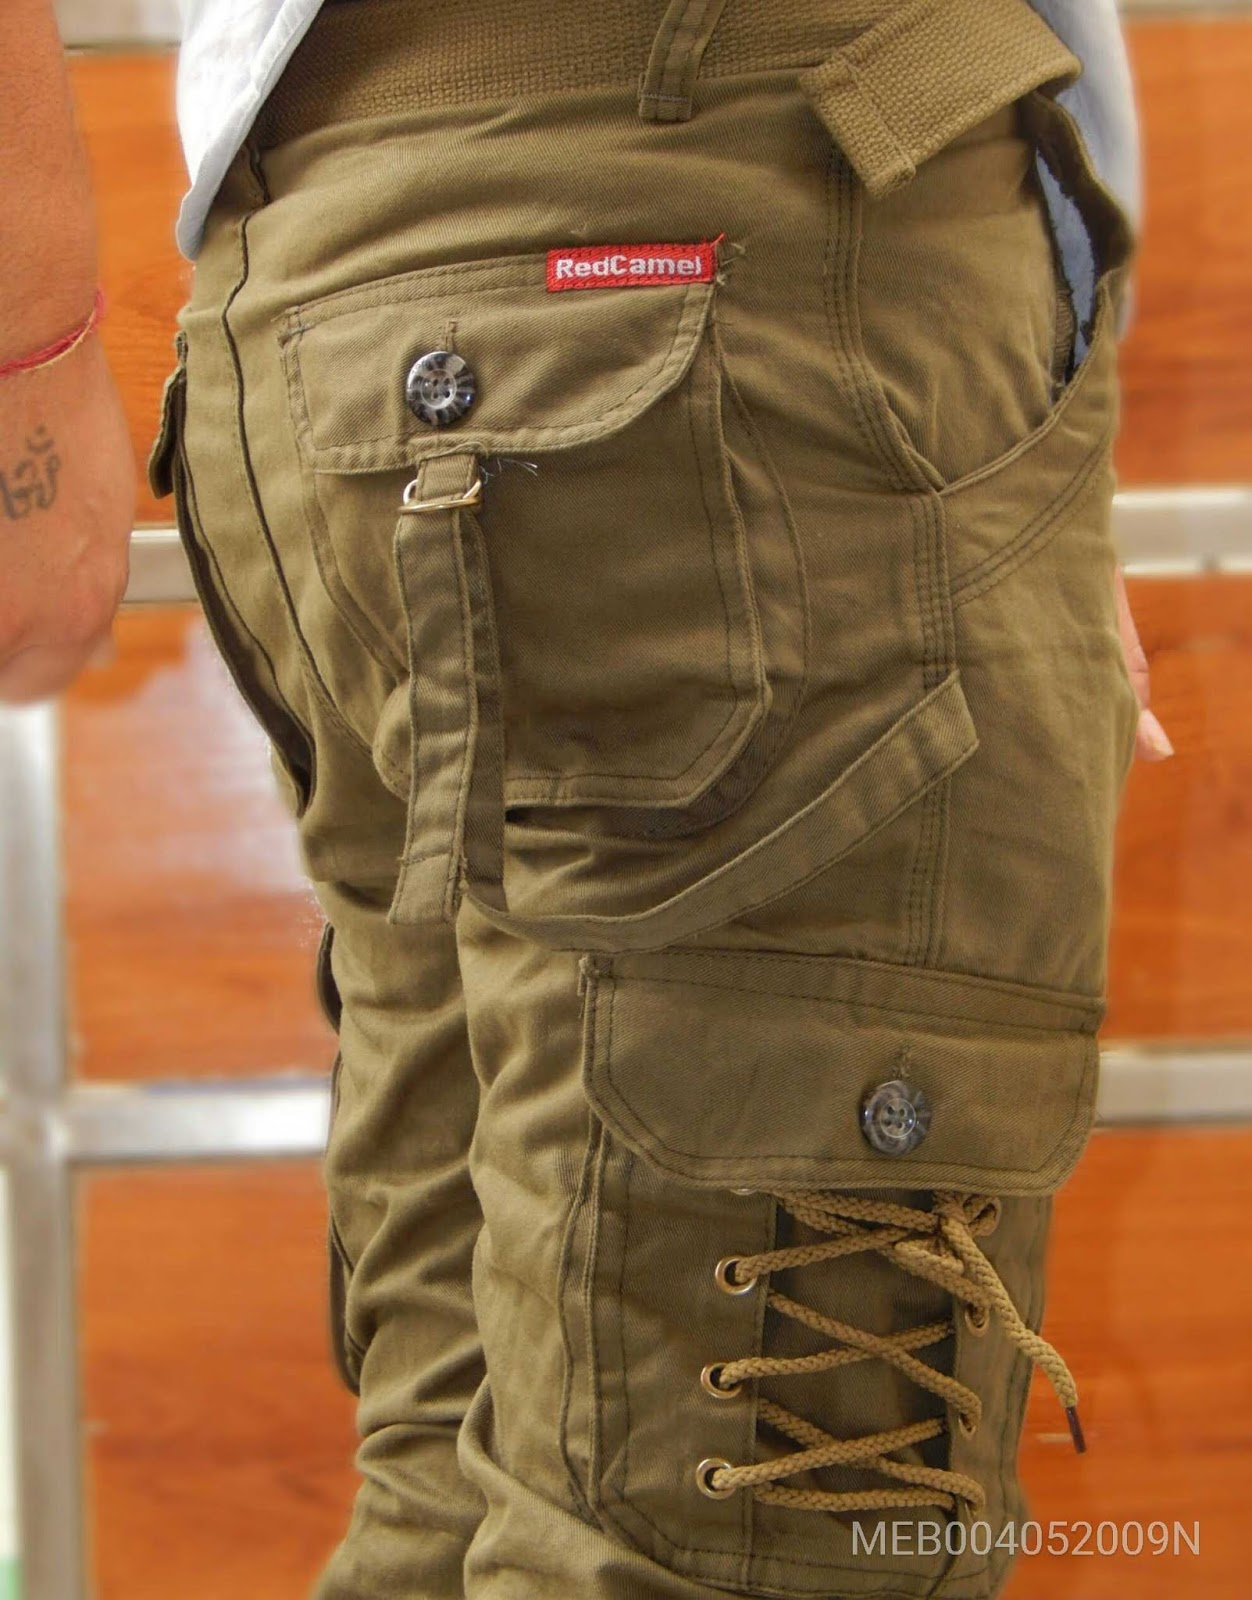 Trendy Cargo 6 Pockets with Zippers closures and Ealsticated bottom